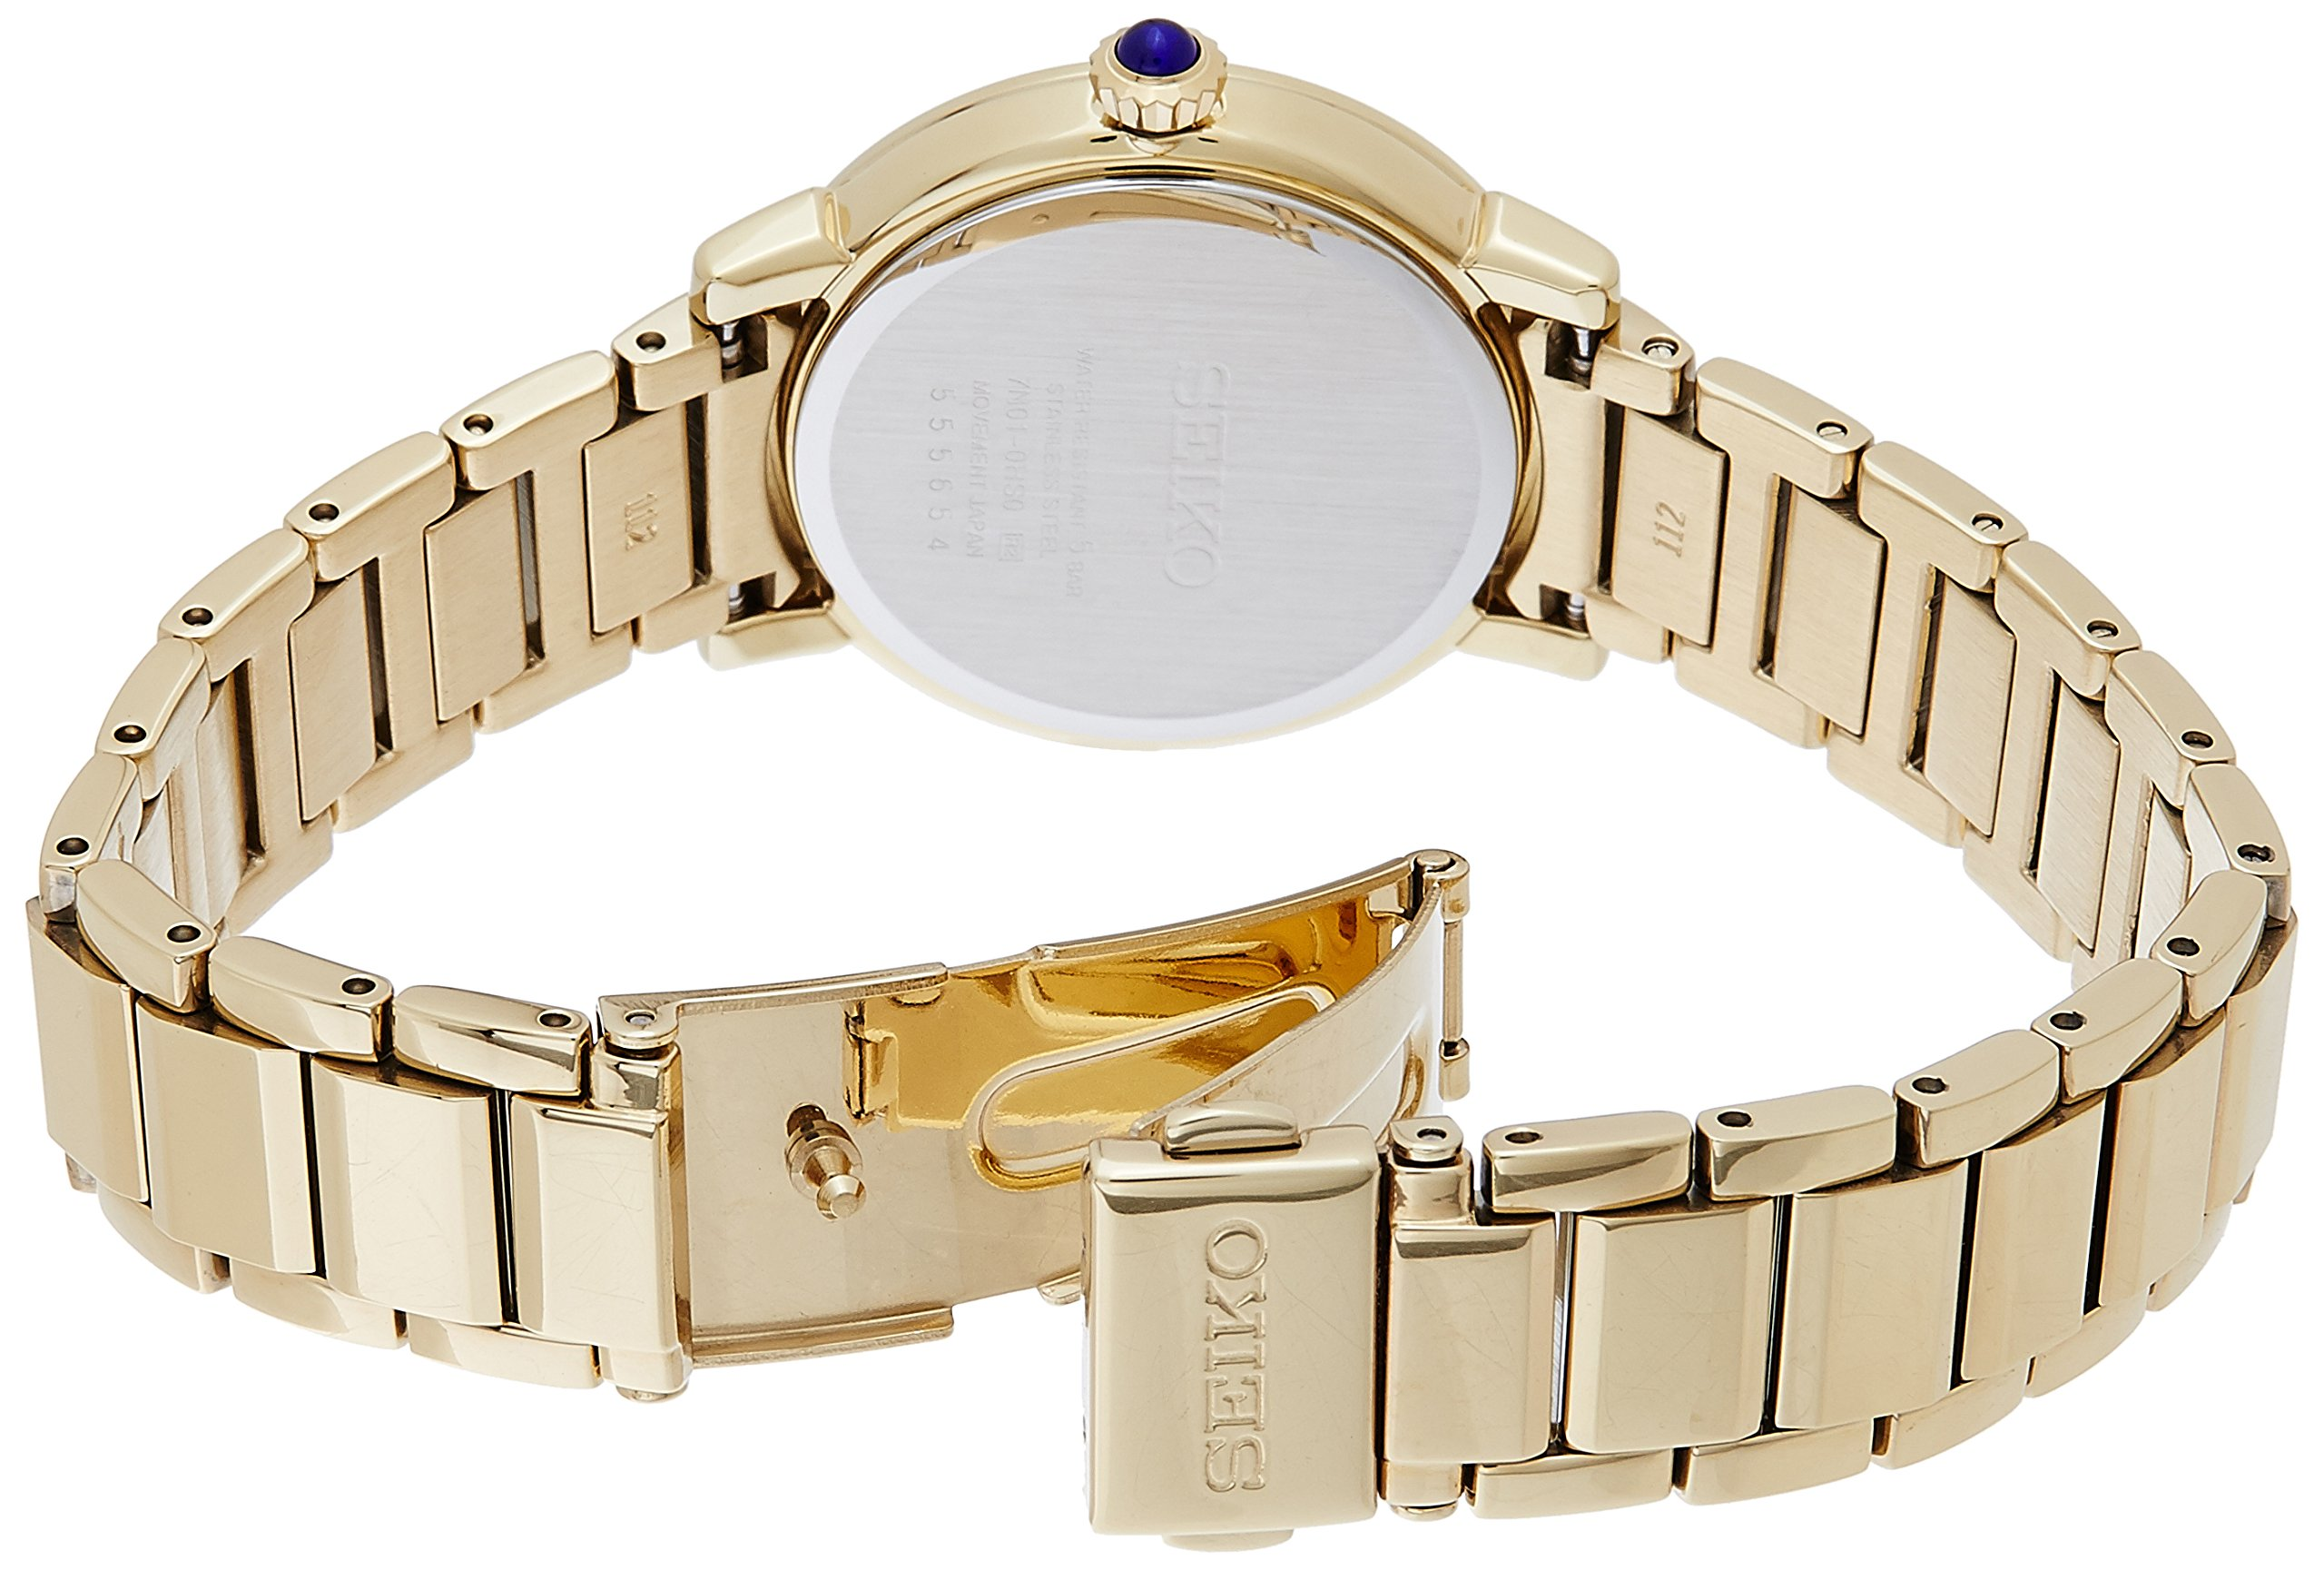 Seiko Analog White Dial Women's Watch – SRZ450P1